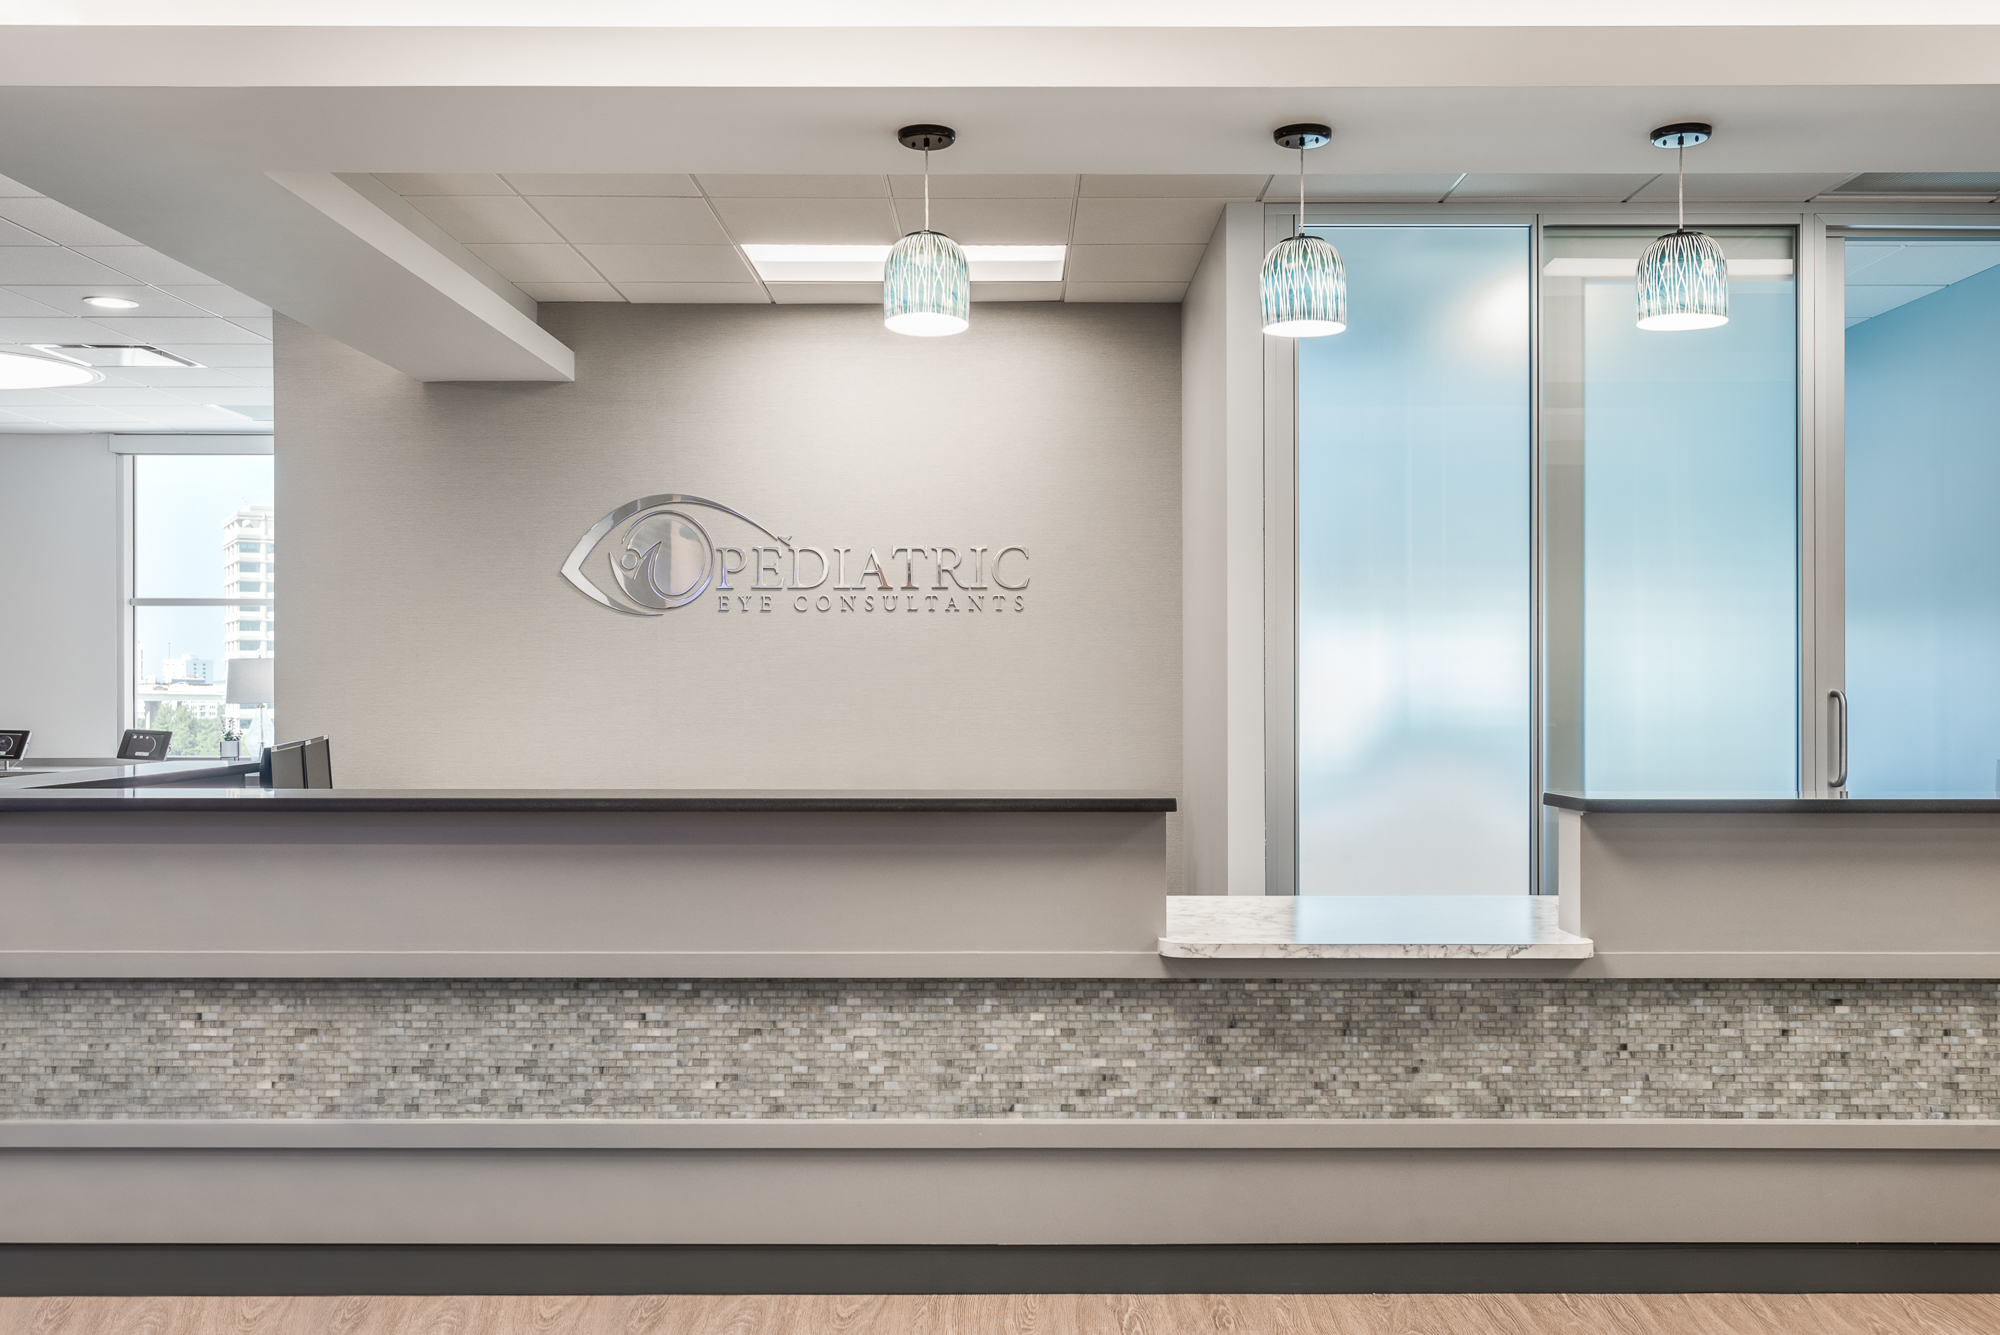 Micamy Design Studio_Interior Design_Pediatric Eye Consultants_North Florida_Riverside_Ophthalmology_Strabismus_Office__Renovation_Entry_Seating_Reception_Entrance_Greeting_Vihara_Minka.jpg